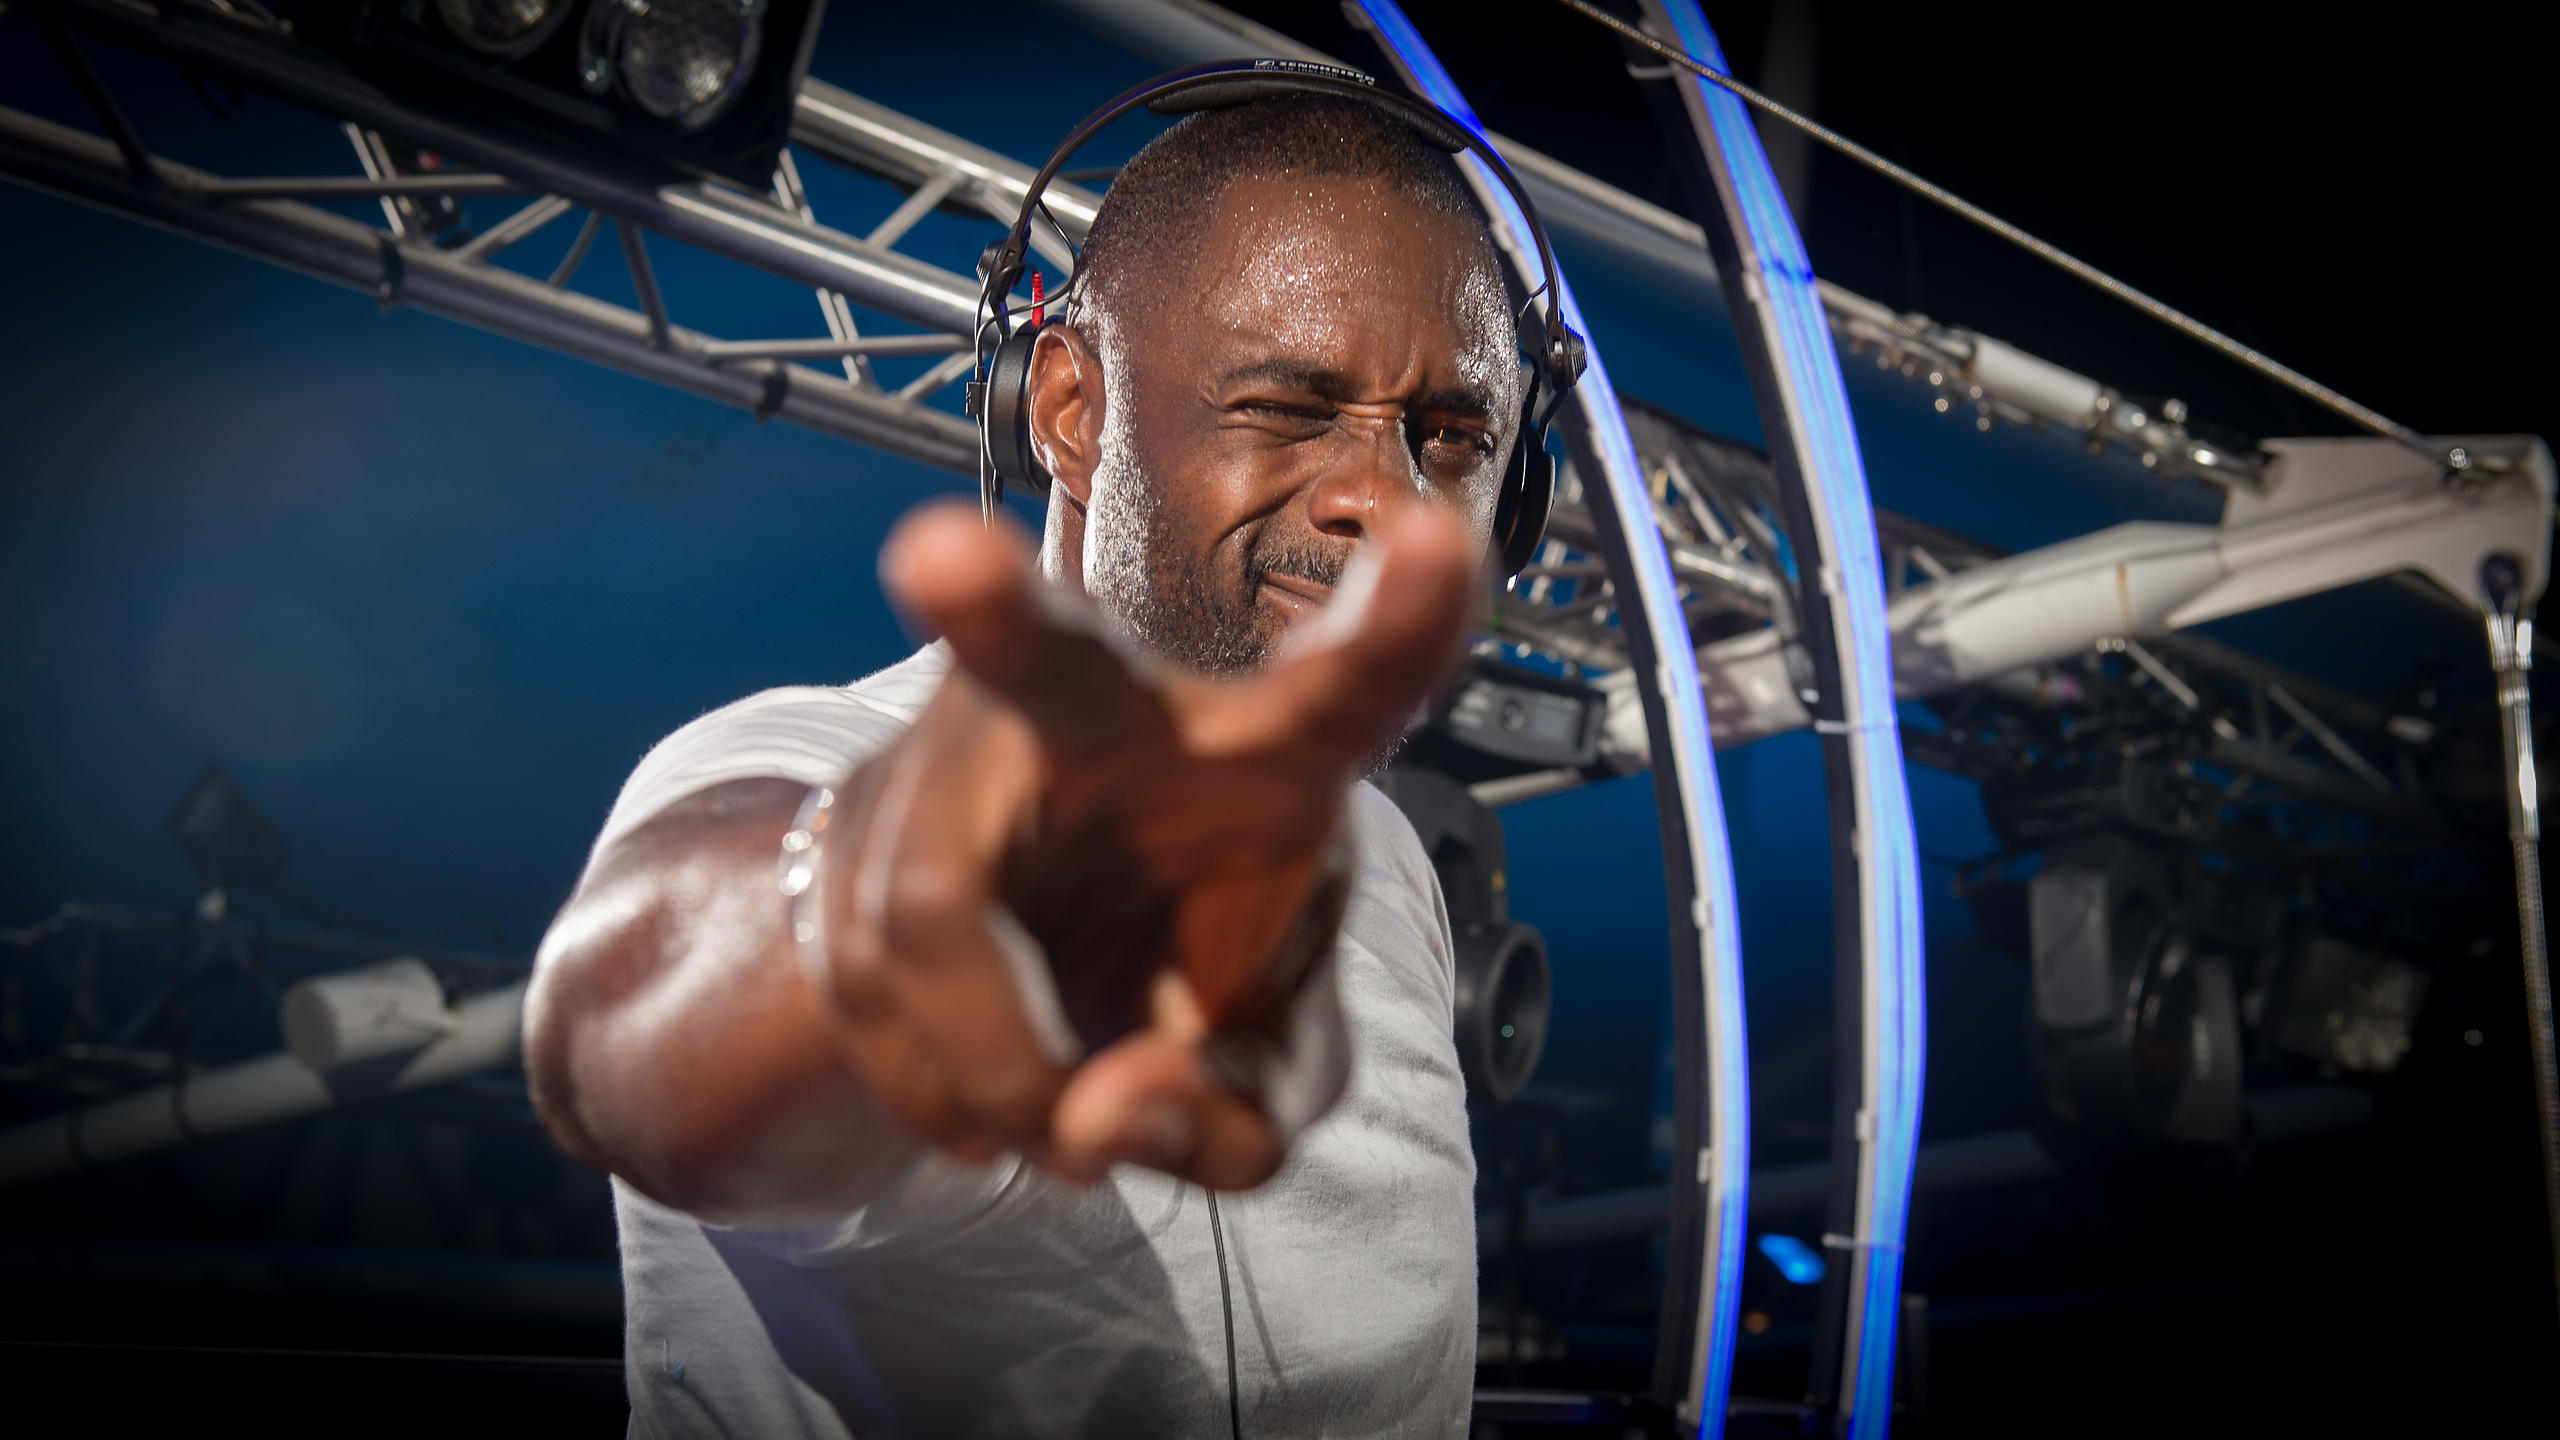 Idris Elba Rocking Goodwood at Three Friday Nights 2015